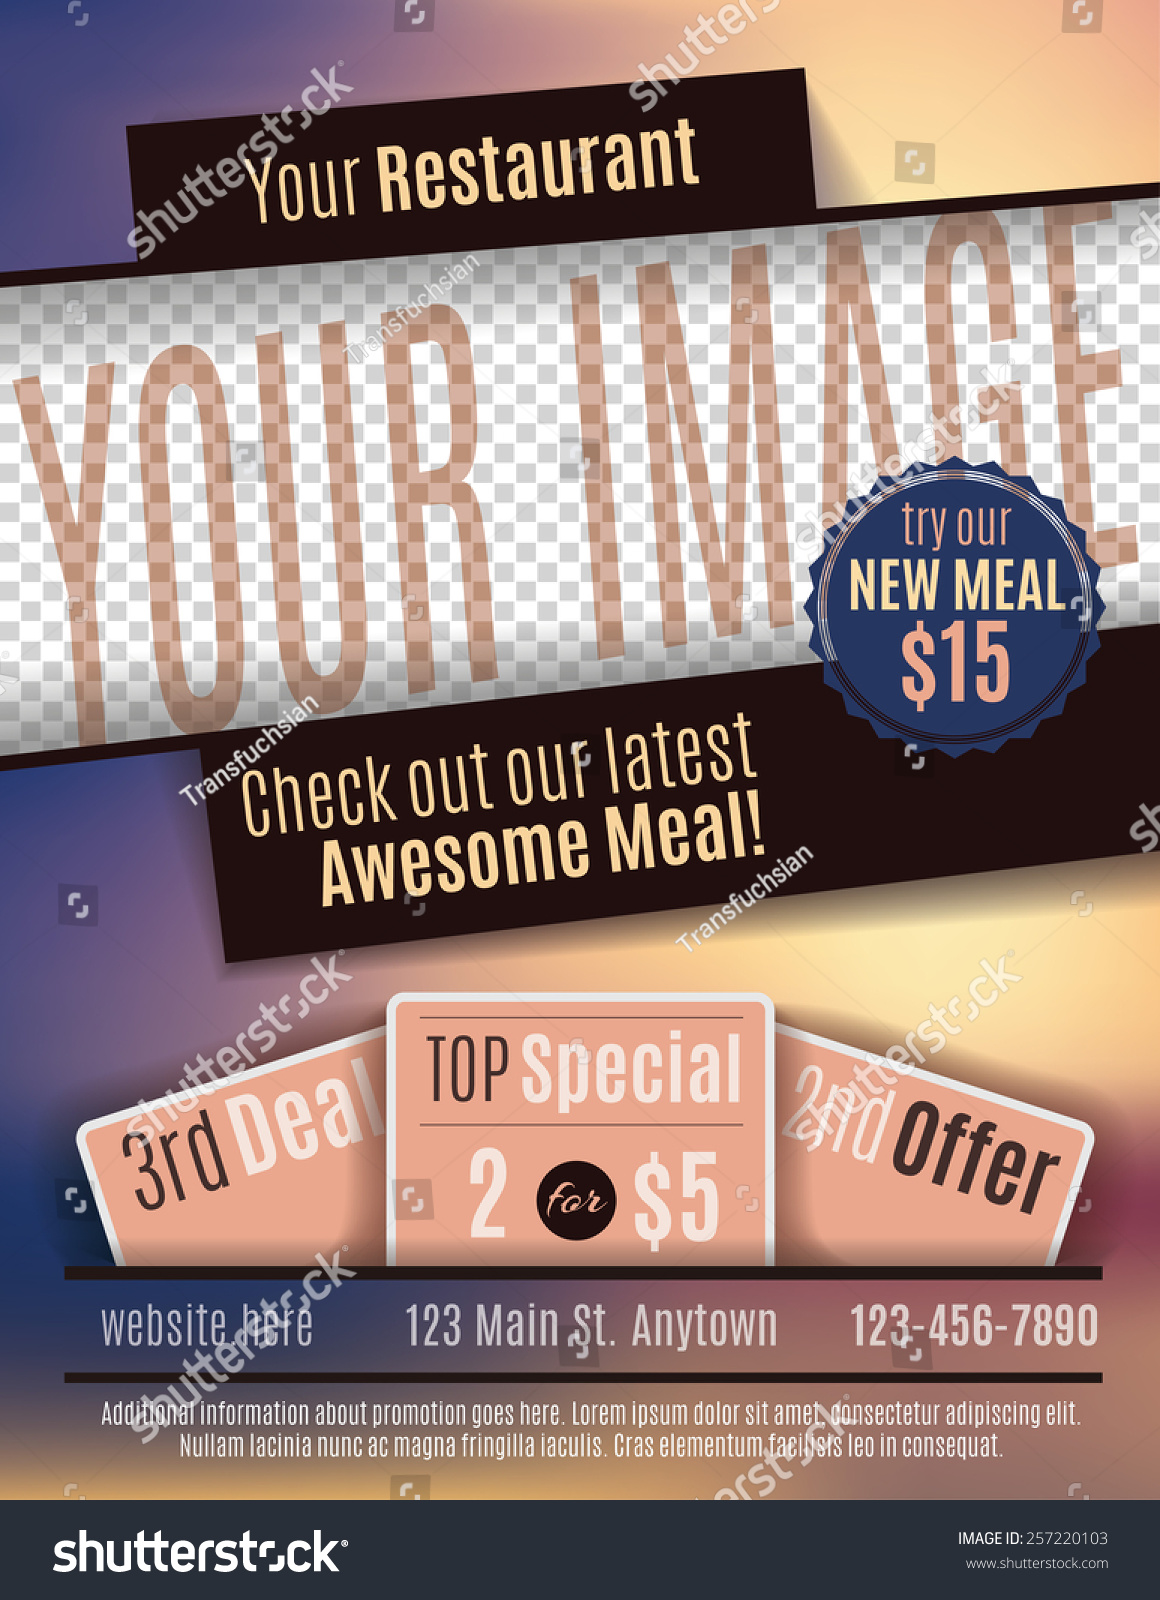 doc restaurant coupon template coupon templates vector flyer template design for restaurant coupon space for restaurant coupon template